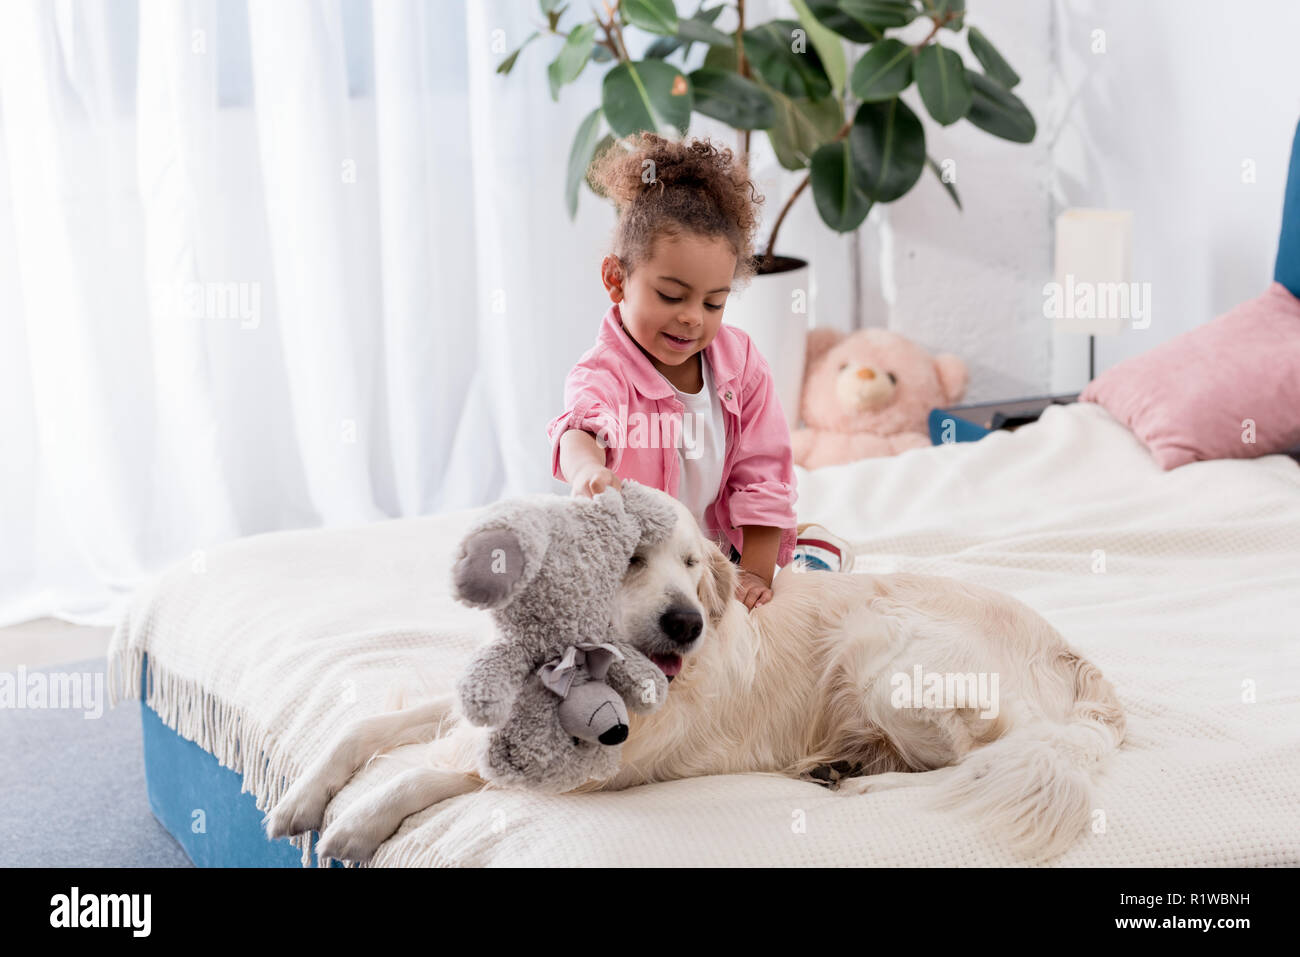 Cute african american kid sitting on the bed and playing with teddy bear and retriever - Stock Image